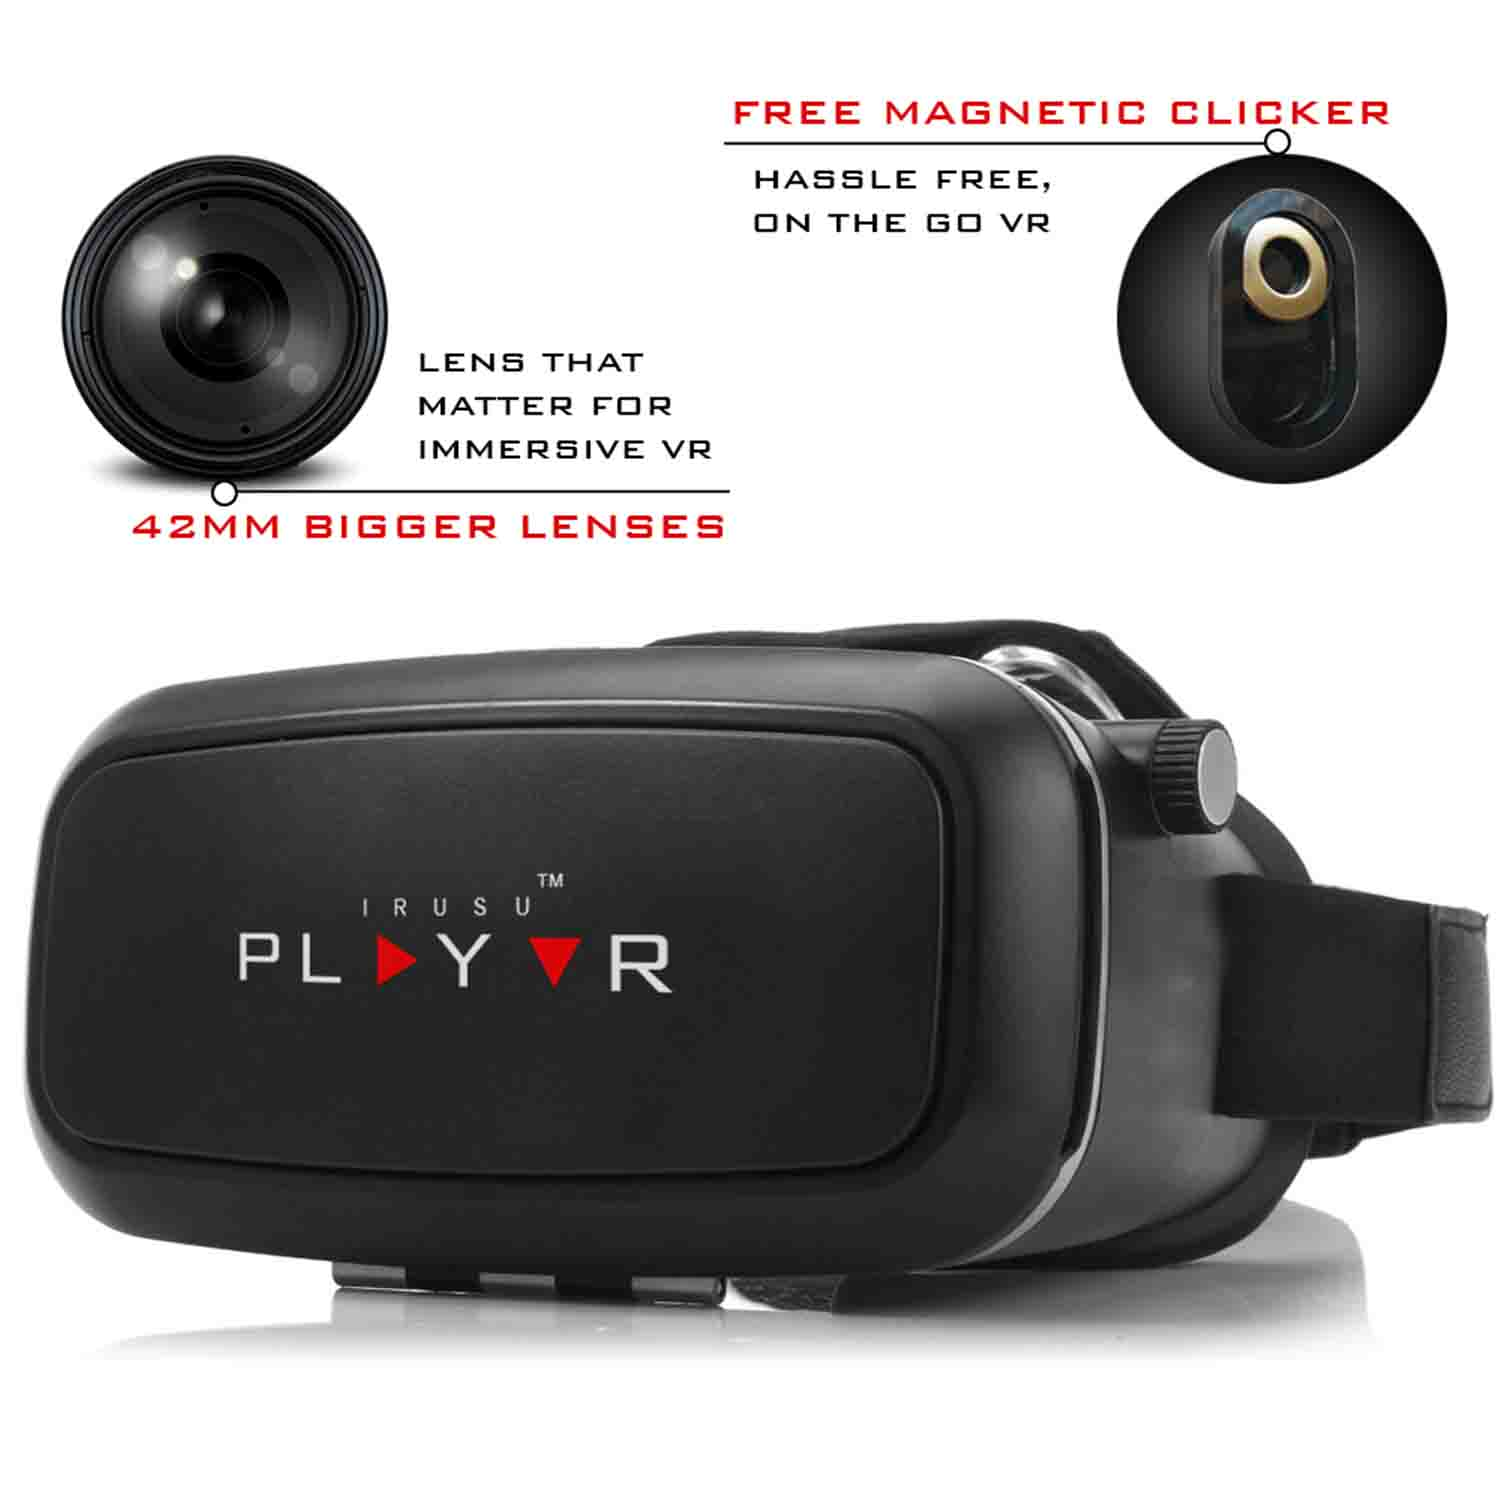 play vr headset,VR headset india ,Virtual Reality india , Google Cardboard india,VR Box india, vr headsets in india , VR headset online india,vr glasses in india,best vr headsets in india,3d virtual reality headset